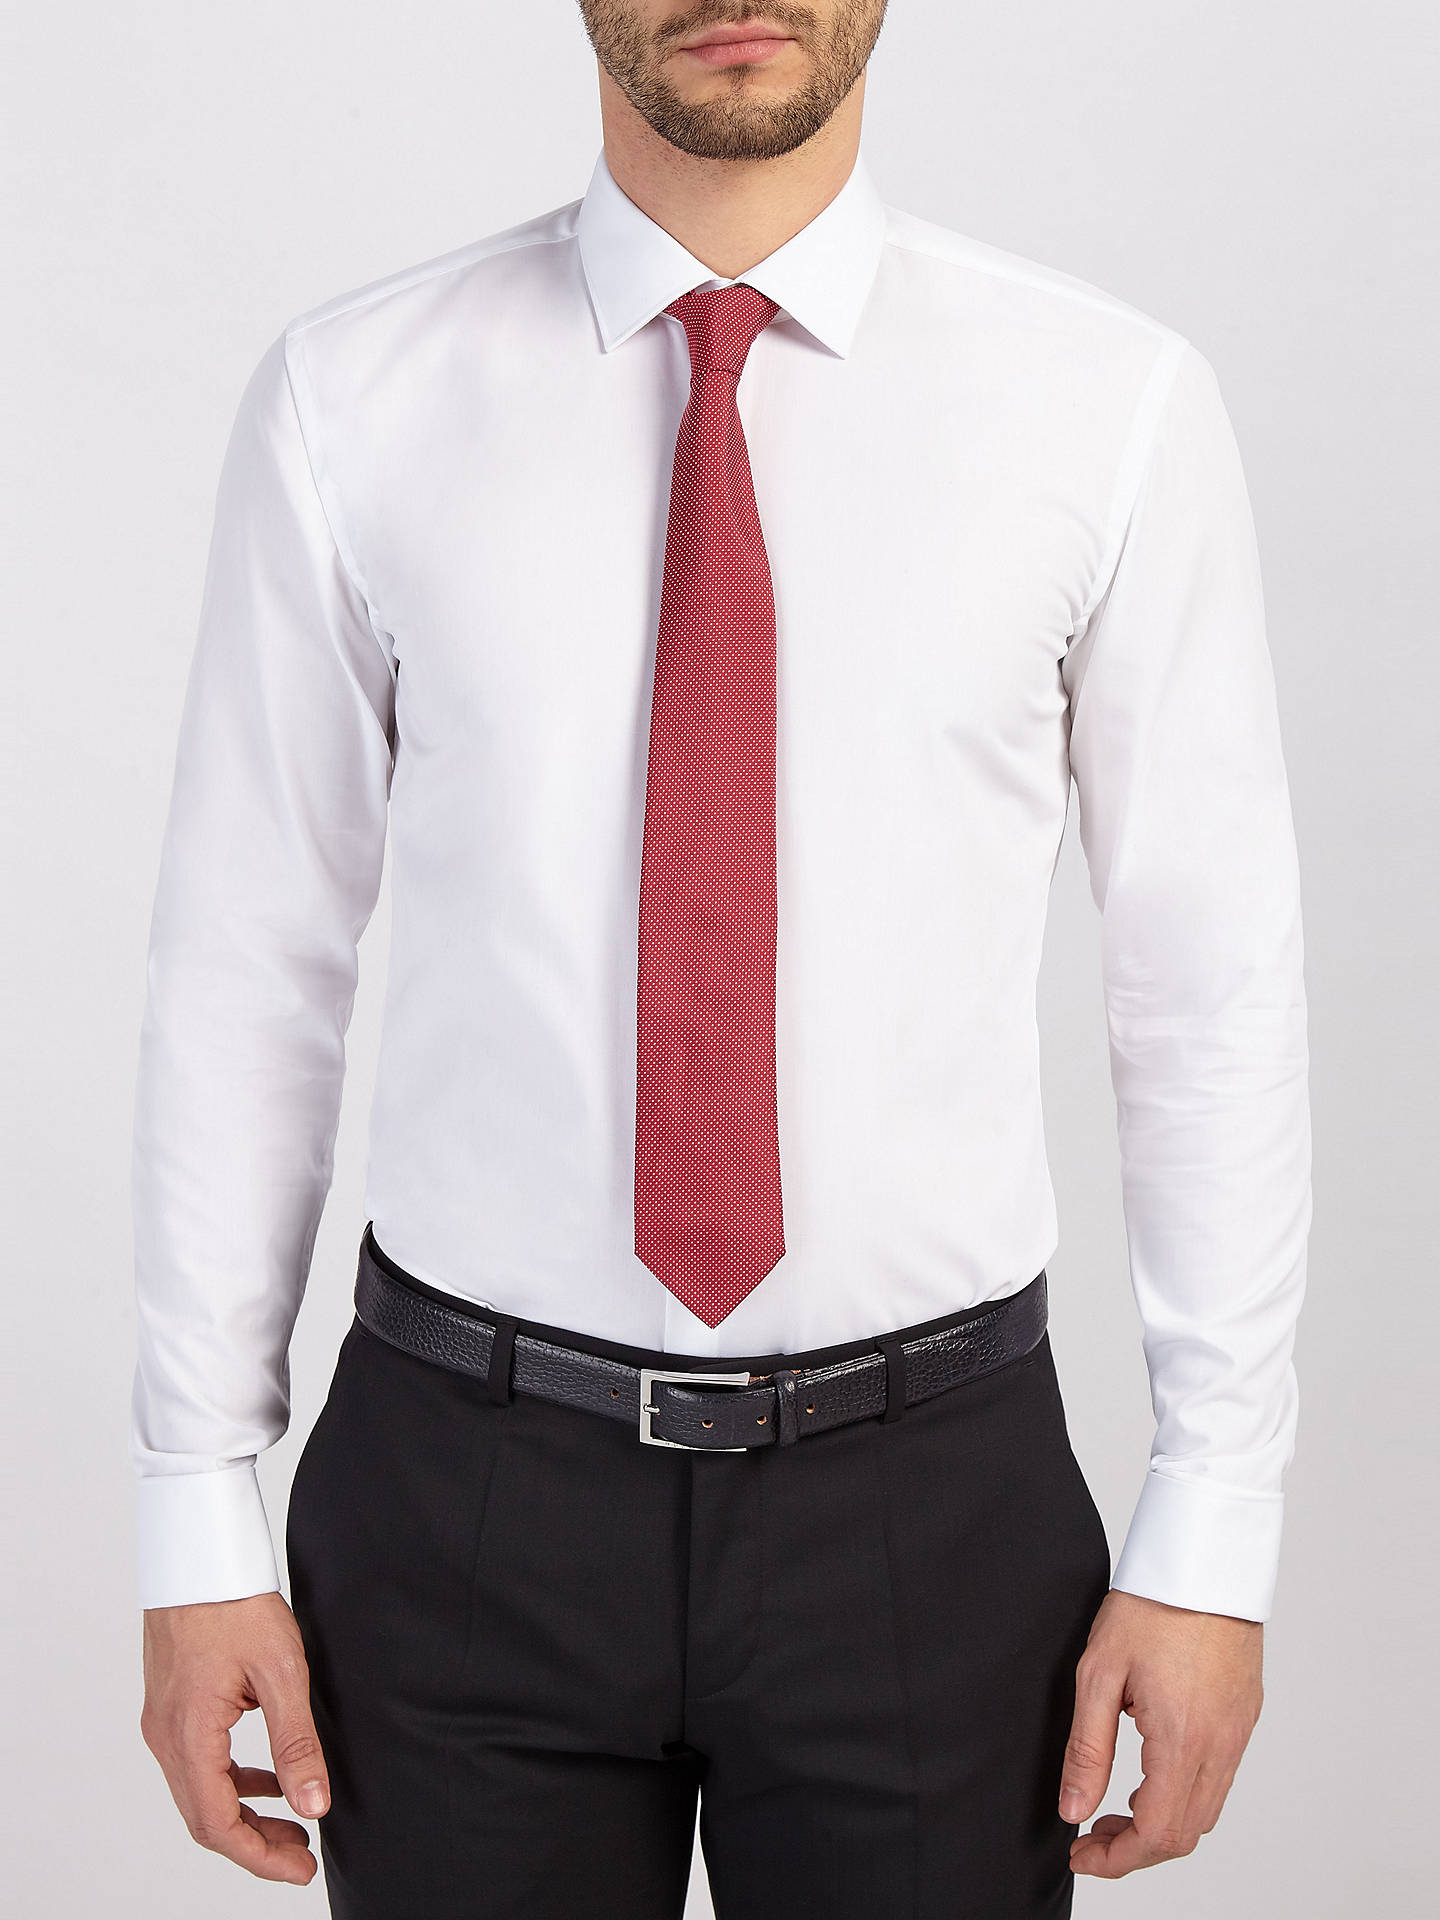 7769e0a2 ... Buy HUGO by Hugo Boss C-Jacques Double Cuff Slim Fit Shirt, Open White  ...